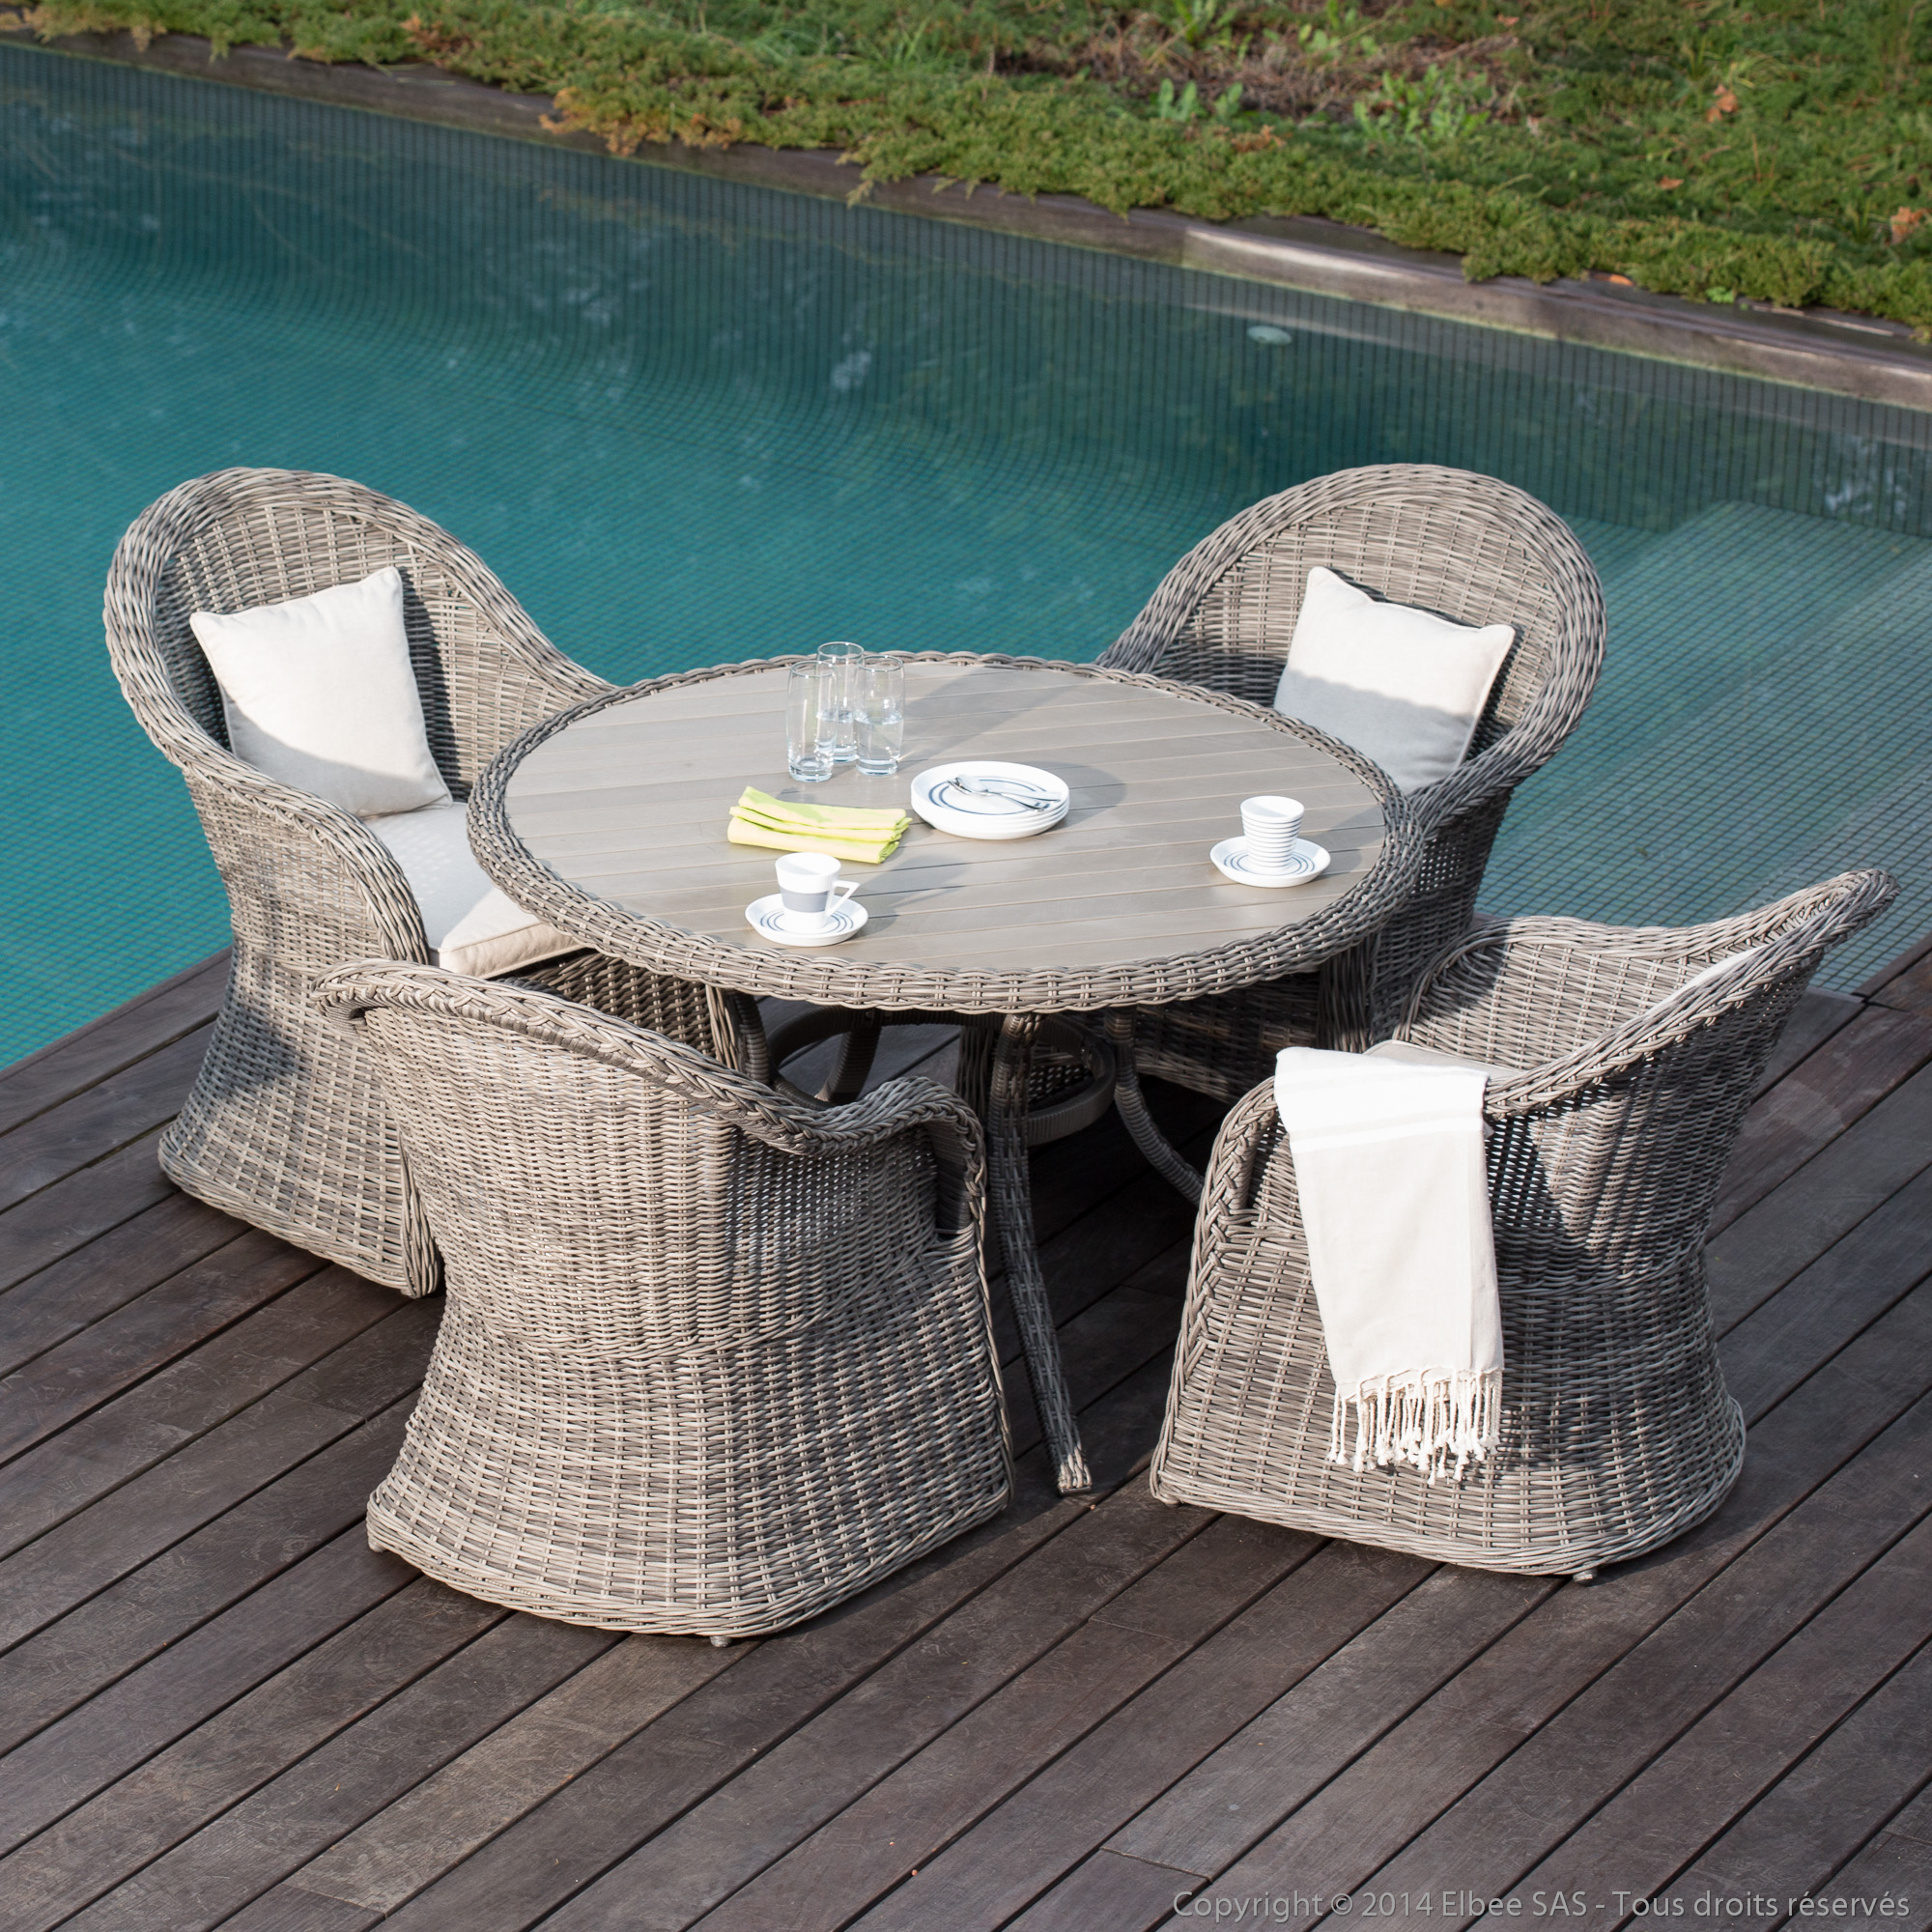 Table Jardin Resine Table De Jardin Ronde Resine Stunning Salon Tressee Idees Conception Jardin Idees Conception Jardin